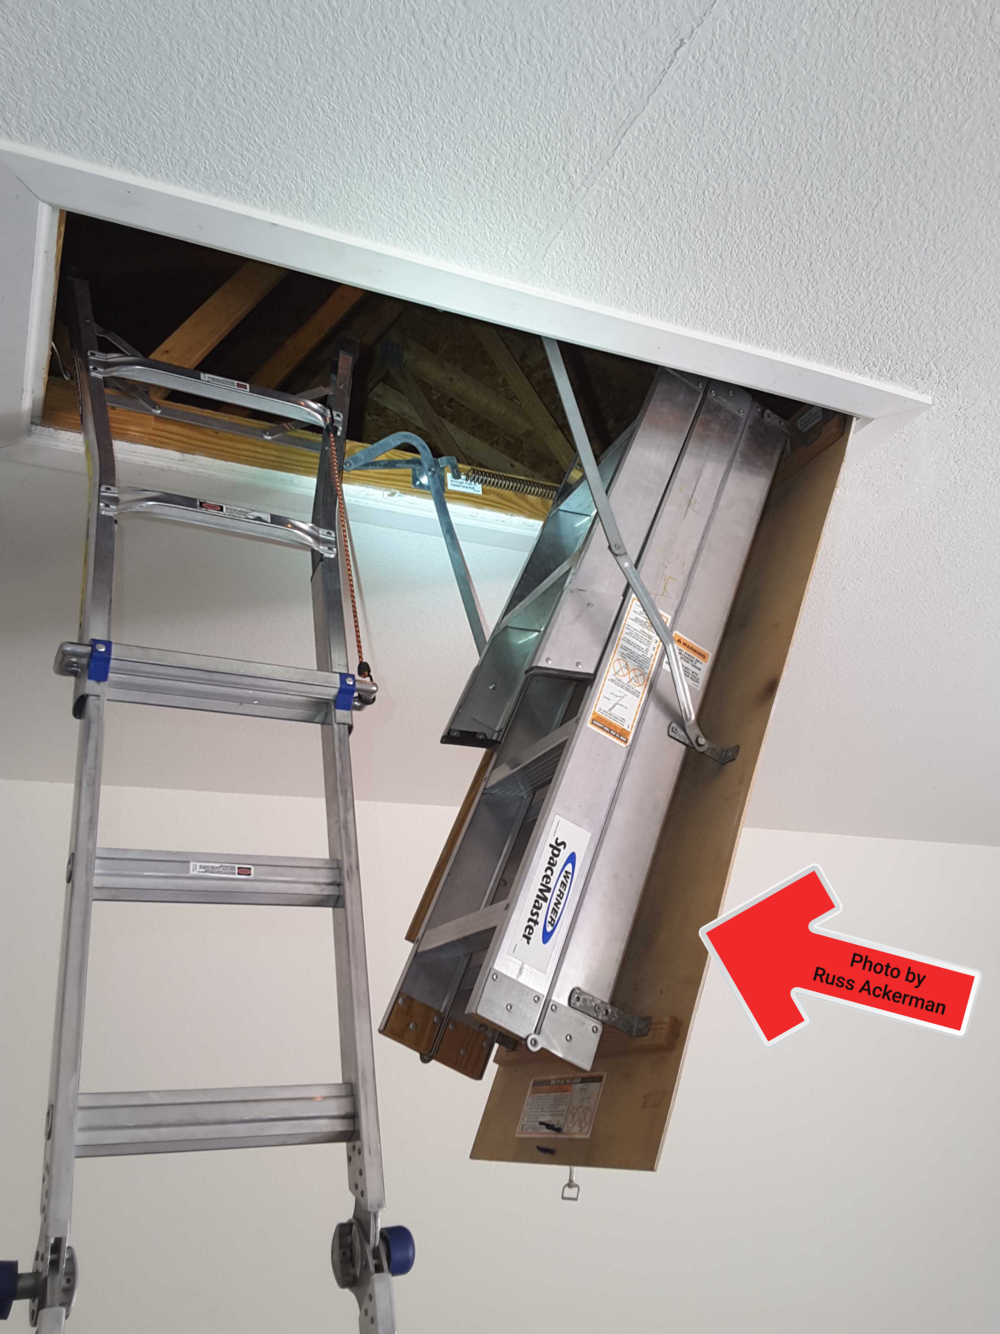 """Pull down attic ladders in a garage usually have a thin 1/4"""" plywood cover which does not meet fire separation barrier requirements."""